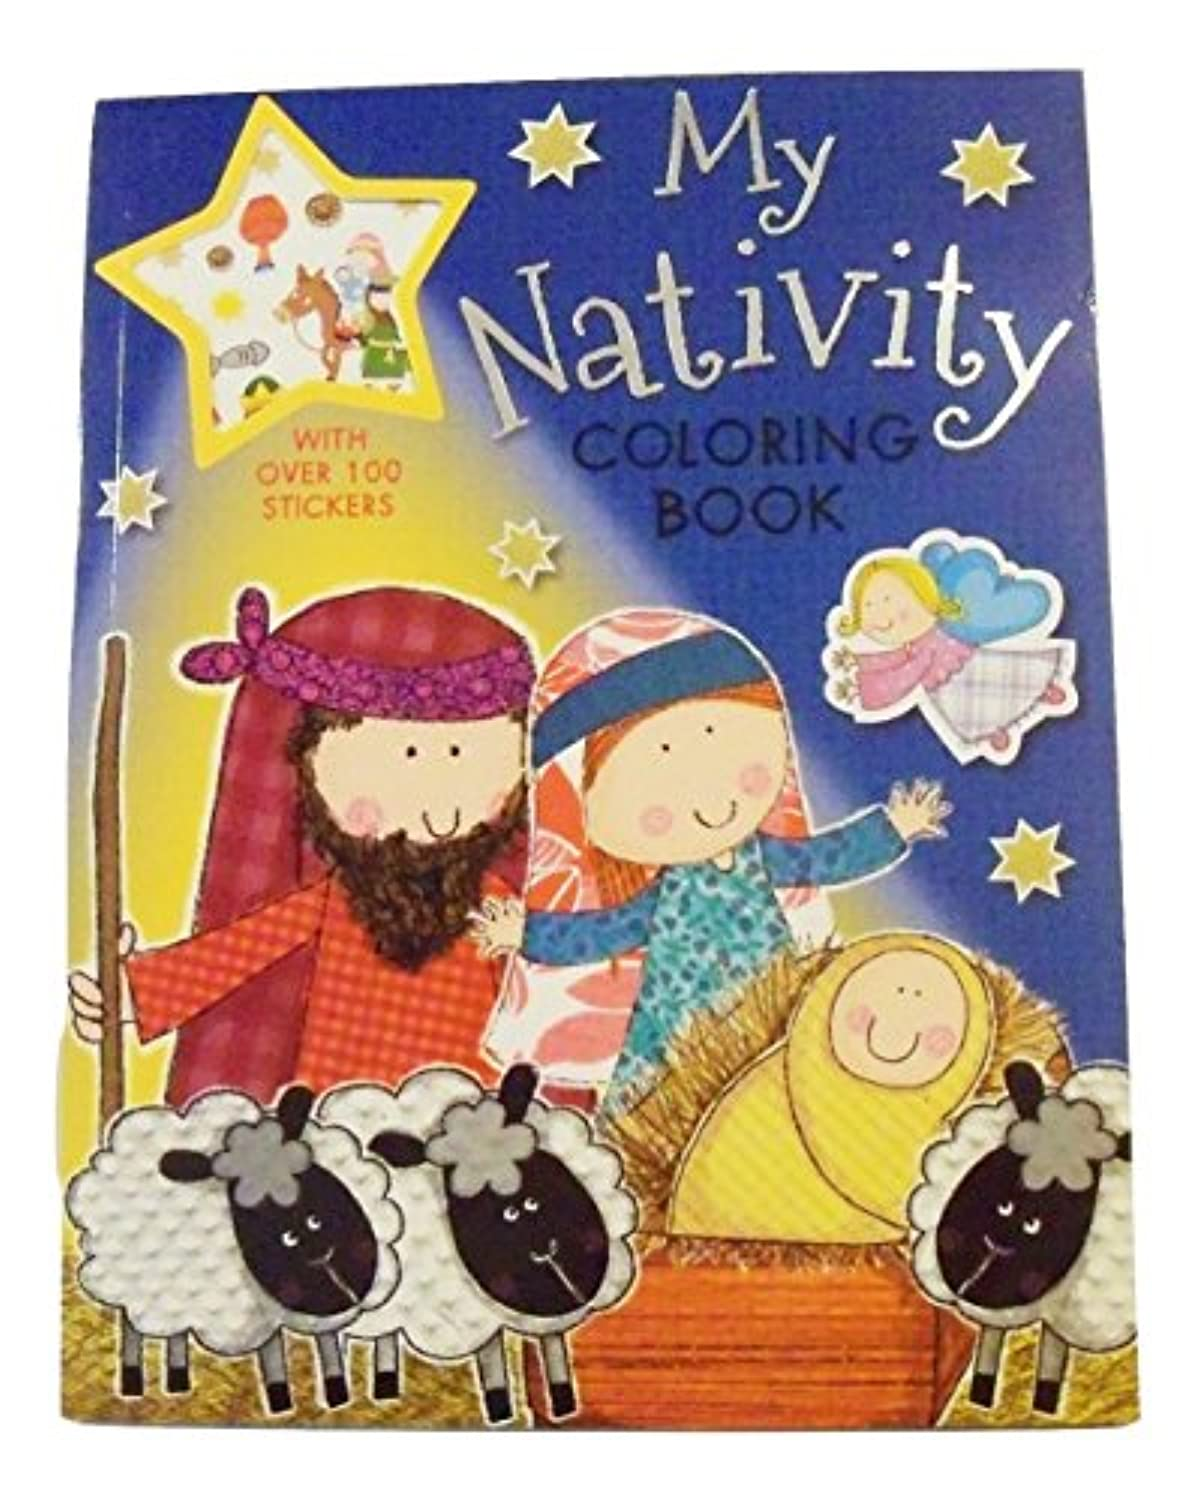 My Nativity Colouring Book with Over 100 Colour Stickers (20cm x 25cm ; 2014)